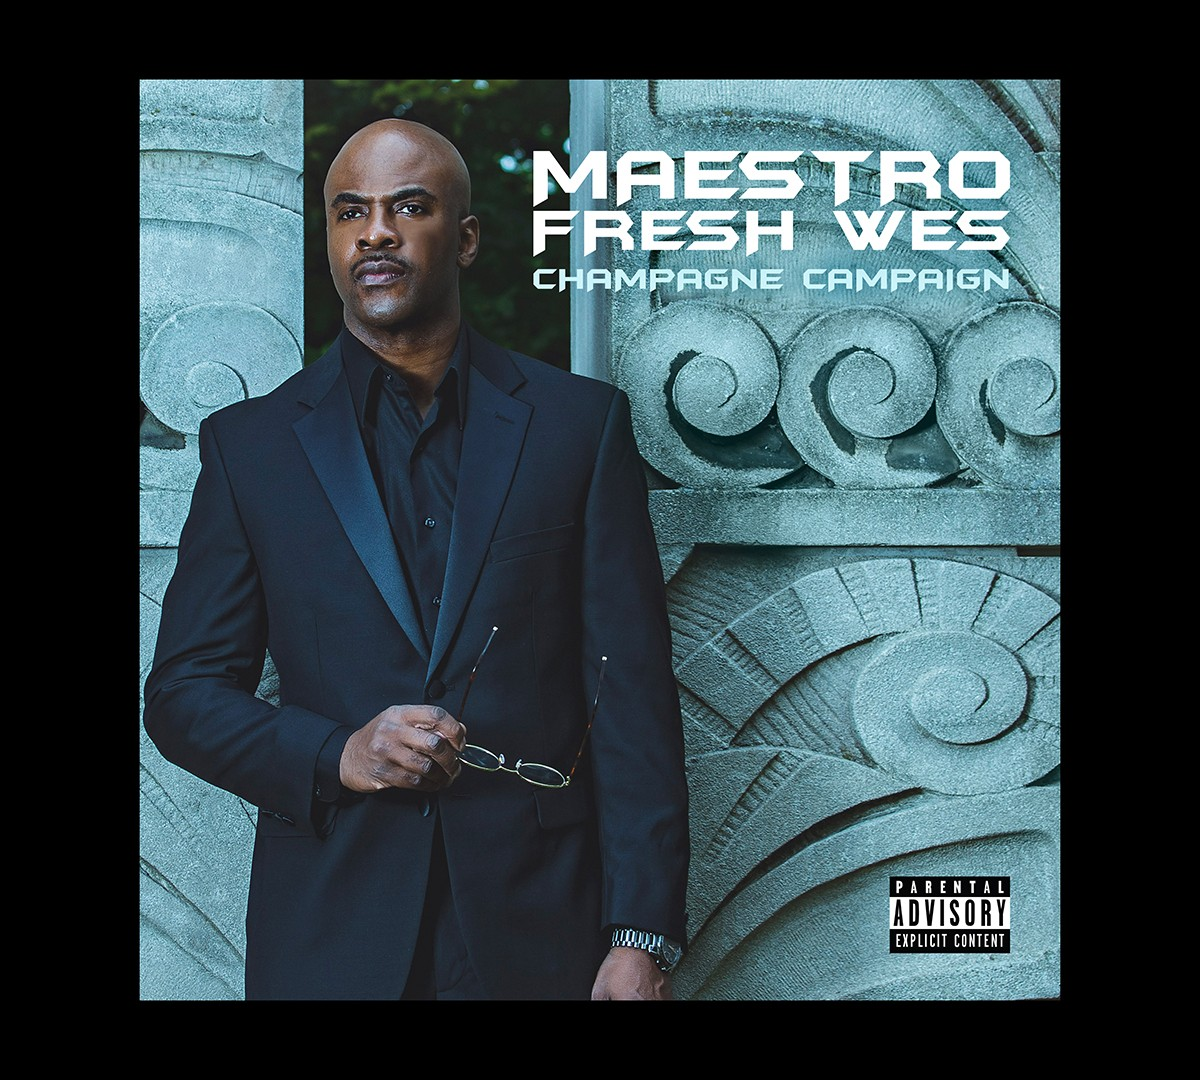 Maestro Fresh Wes's Champagne Campaign Is A Three Decade Celebration